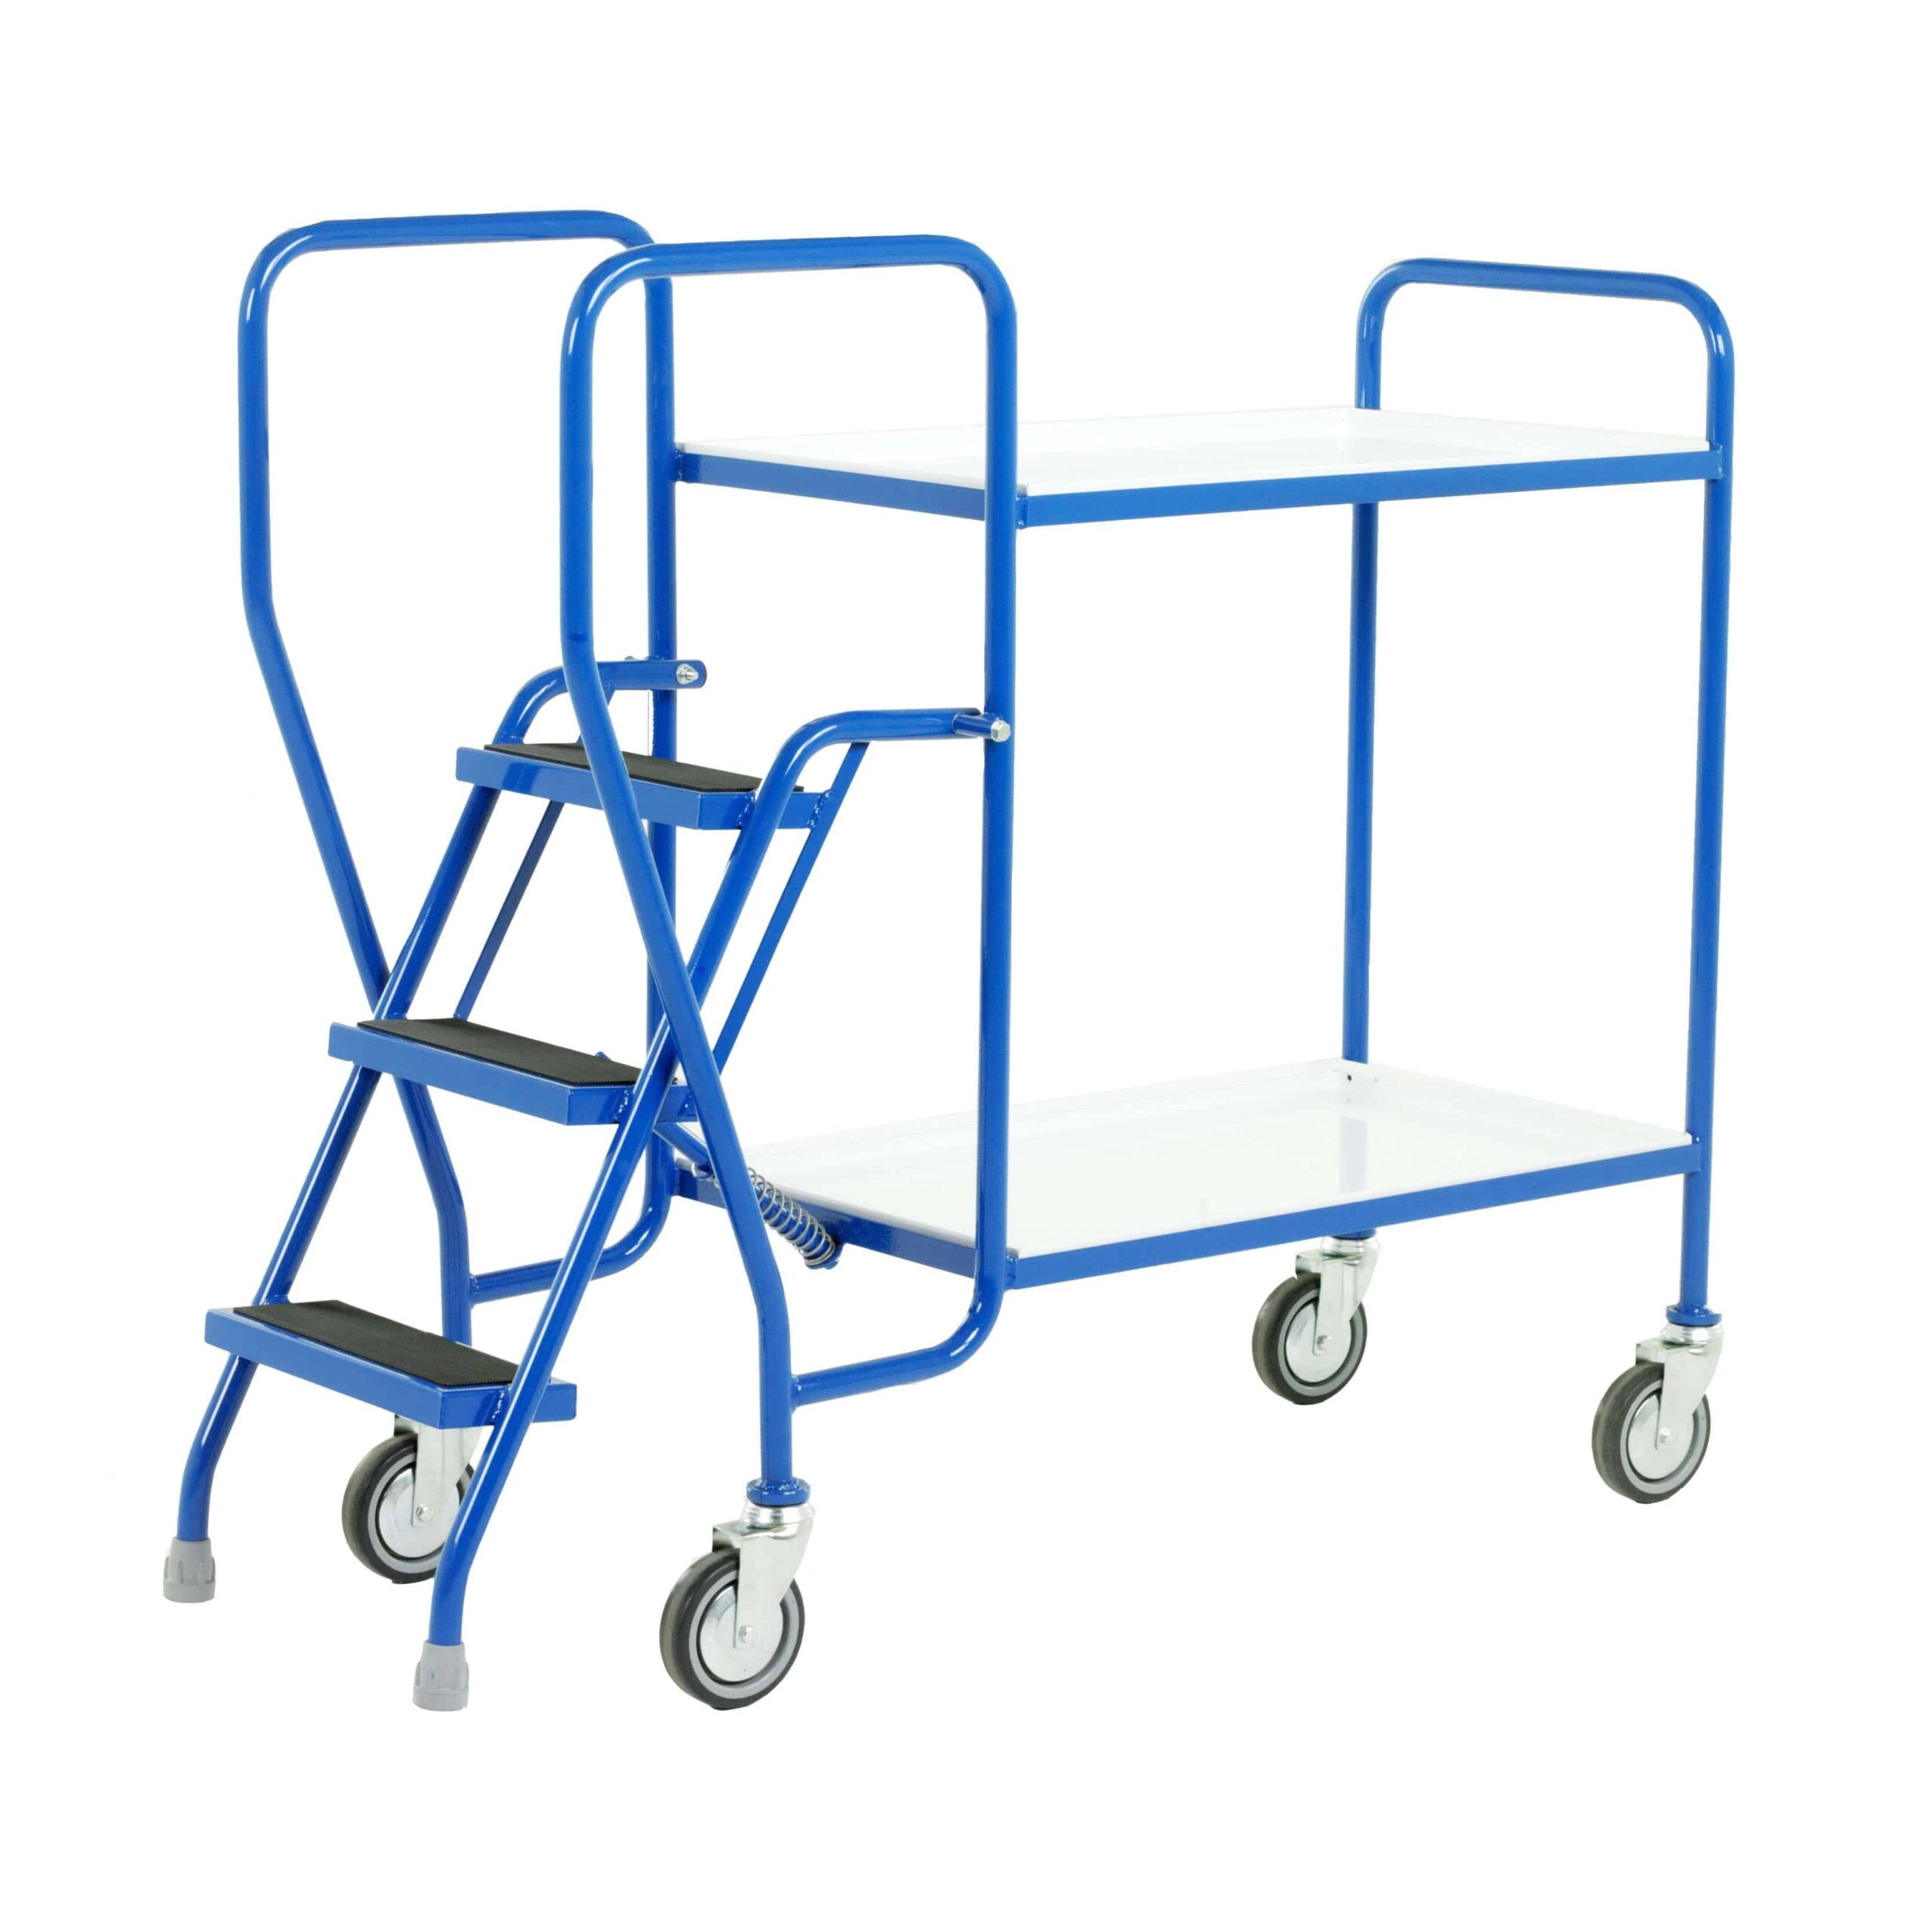 Reversible Tray 3 Step Tray Trolleys